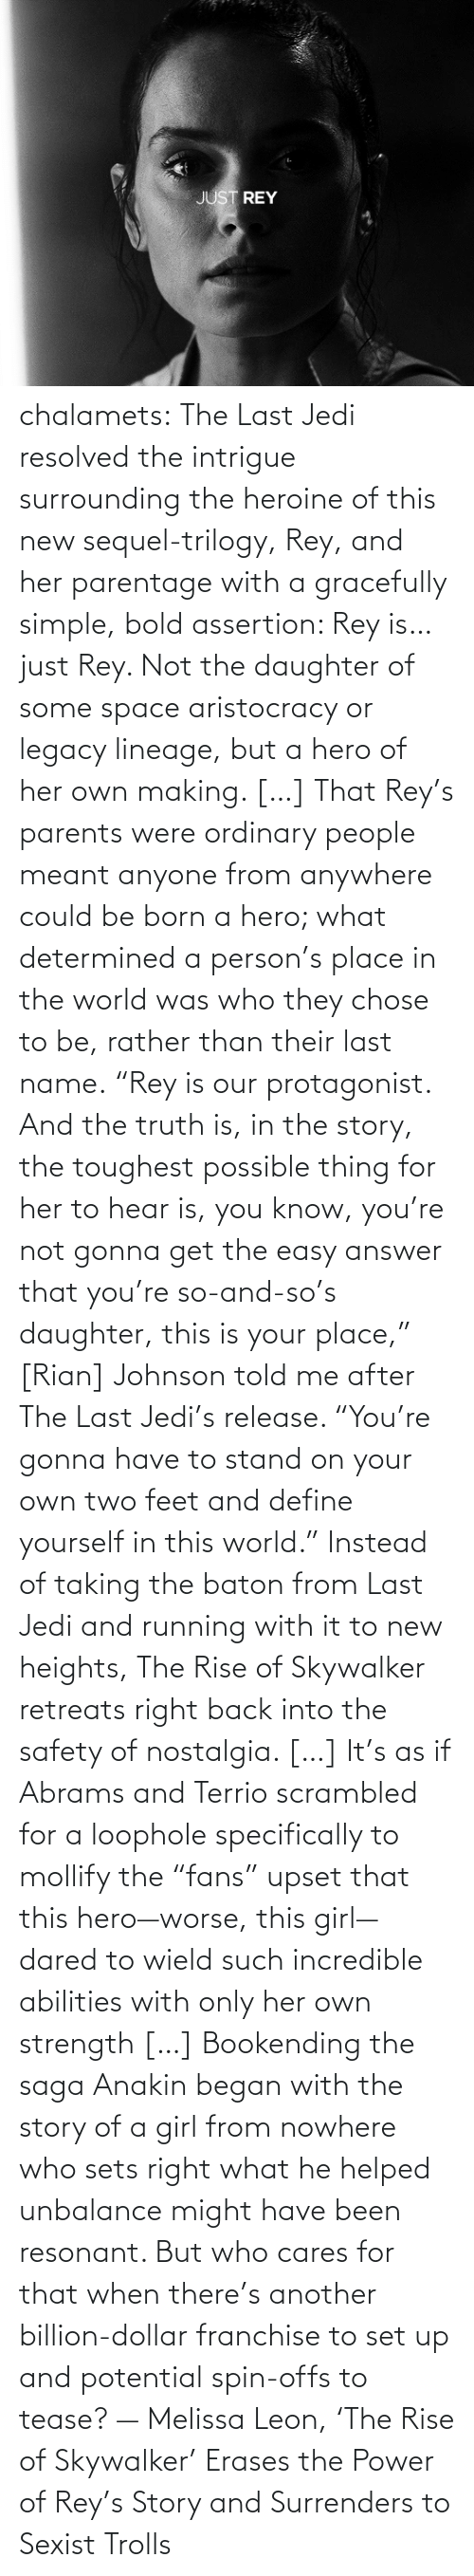 "Meant: chalamets:  The Last Jedi resolved the intrigue surrounding the heroine of this new sequel-trilogy, Rey, and her parentage with a gracefully simple, bold assertion: Rey is… just Rey. Not the daughter of some space aristocracy or legacy lineage, but a hero of her own making. […] That Rey's parents were ordinary people meant anyone from anywhere could be born a hero; what determined a person's place in the world was who they chose to be, rather than their last name. ""Rey is our protagonist. And the truth is, in the story, the toughest possible thing for her to hear is, you know, you're not gonna get the easy answer that you're so-and-so's daughter, this is your place,"" [Rian] Johnson told me after The Last Jedi's release. ""You're gonna have to stand on your own two feet and define yourself in this world."" Instead of taking the baton from Last Jedi and running with it to new heights, The Rise of Skywalker retreats right back into the safety of nostalgia. […] It's as if Abrams and Terrio scrambled for a loophole specifically to mollify the ""fans"" upset that this hero—worse, this girl—dared to wield such incredible abilities with only her own strength […] Bookending the saga Anakin began with the story of a girl from nowhere who sets right what he helped unbalance might have been resonant. But who cares for that when there's another billion-dollar franchise to set up and potential spin-offs to tease? — Melissa Leon, 'The Rise of Skywalker' Erases the Power of Rey's Story and Surrenders to Sexist Trolls"